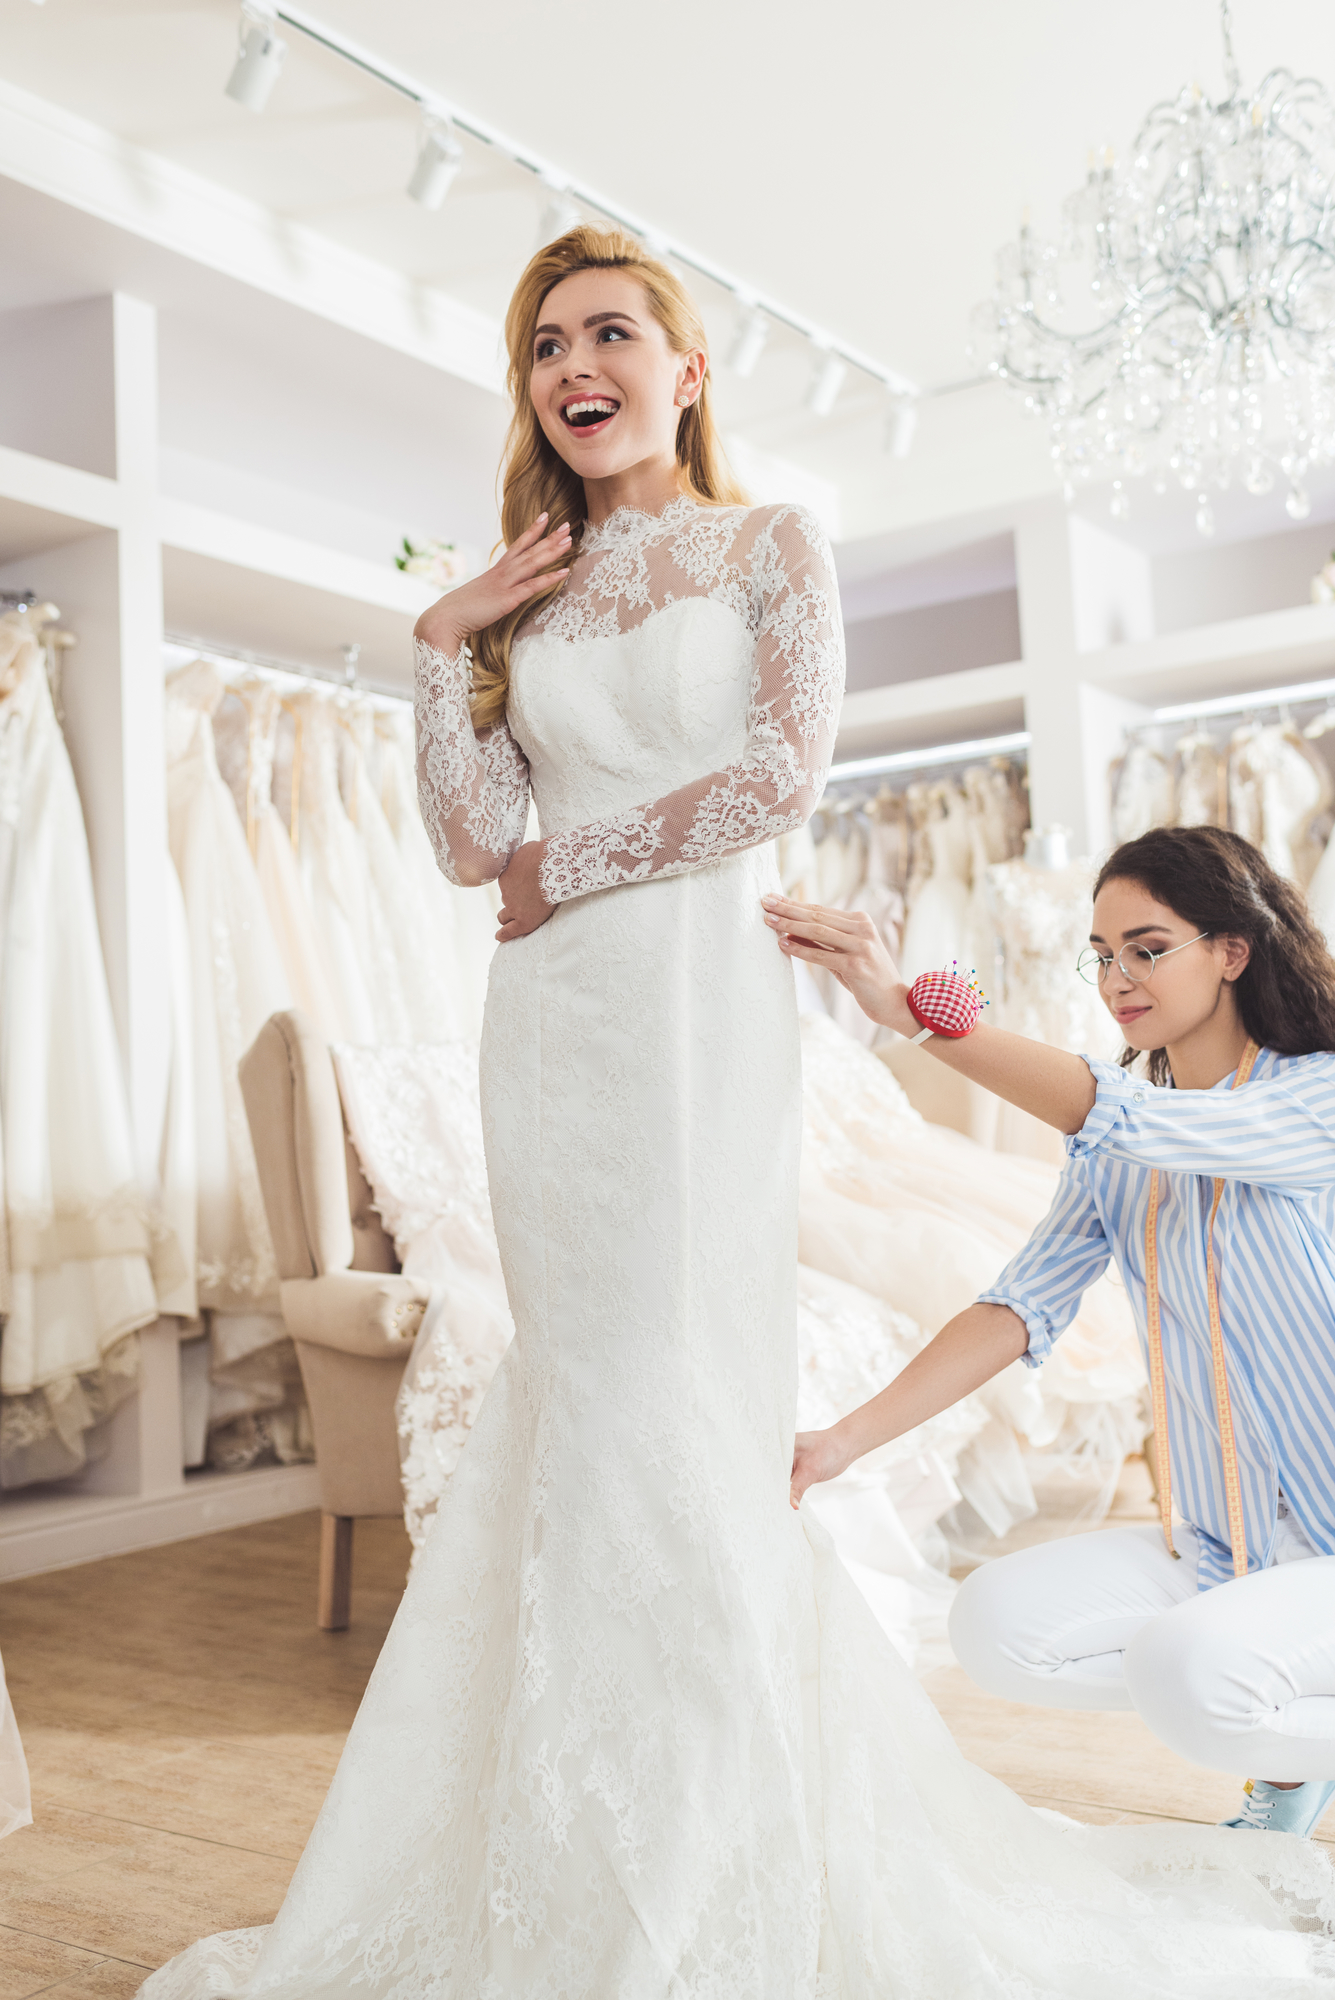 a bride's guide to wedding dress fittings - memories bridal